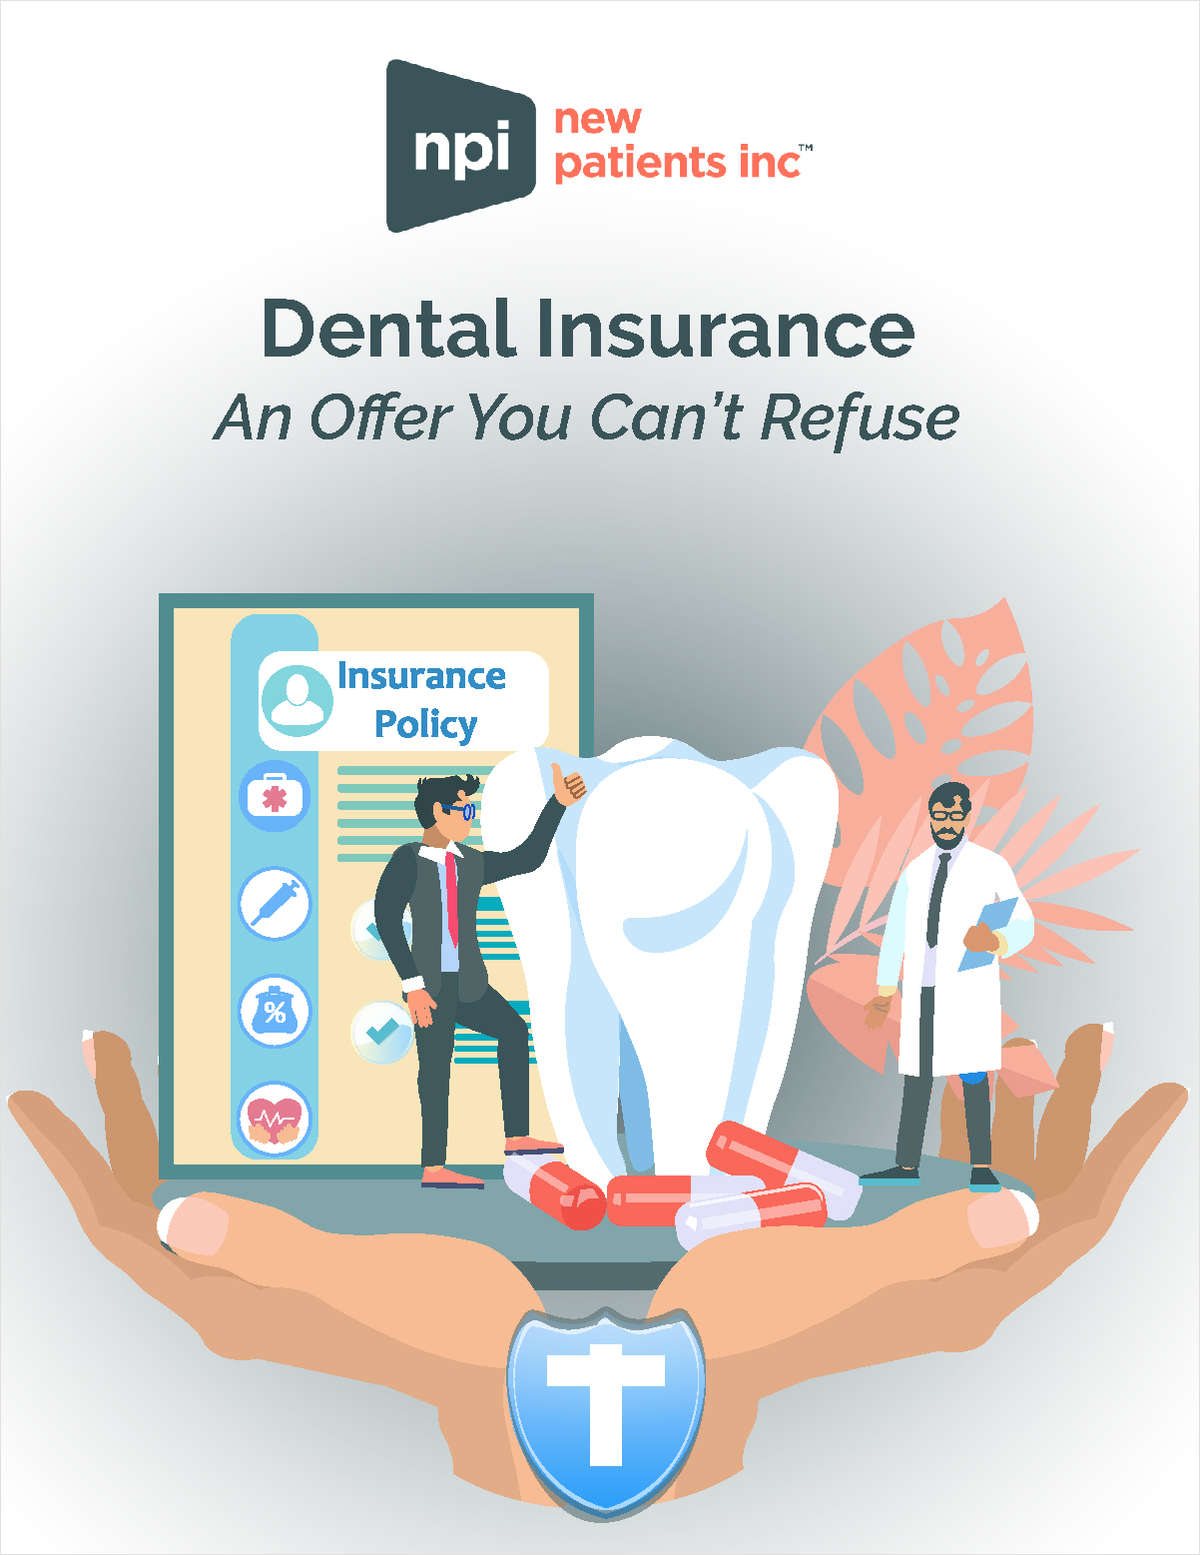 Dental Insurance - An Offer You Can't Refuse